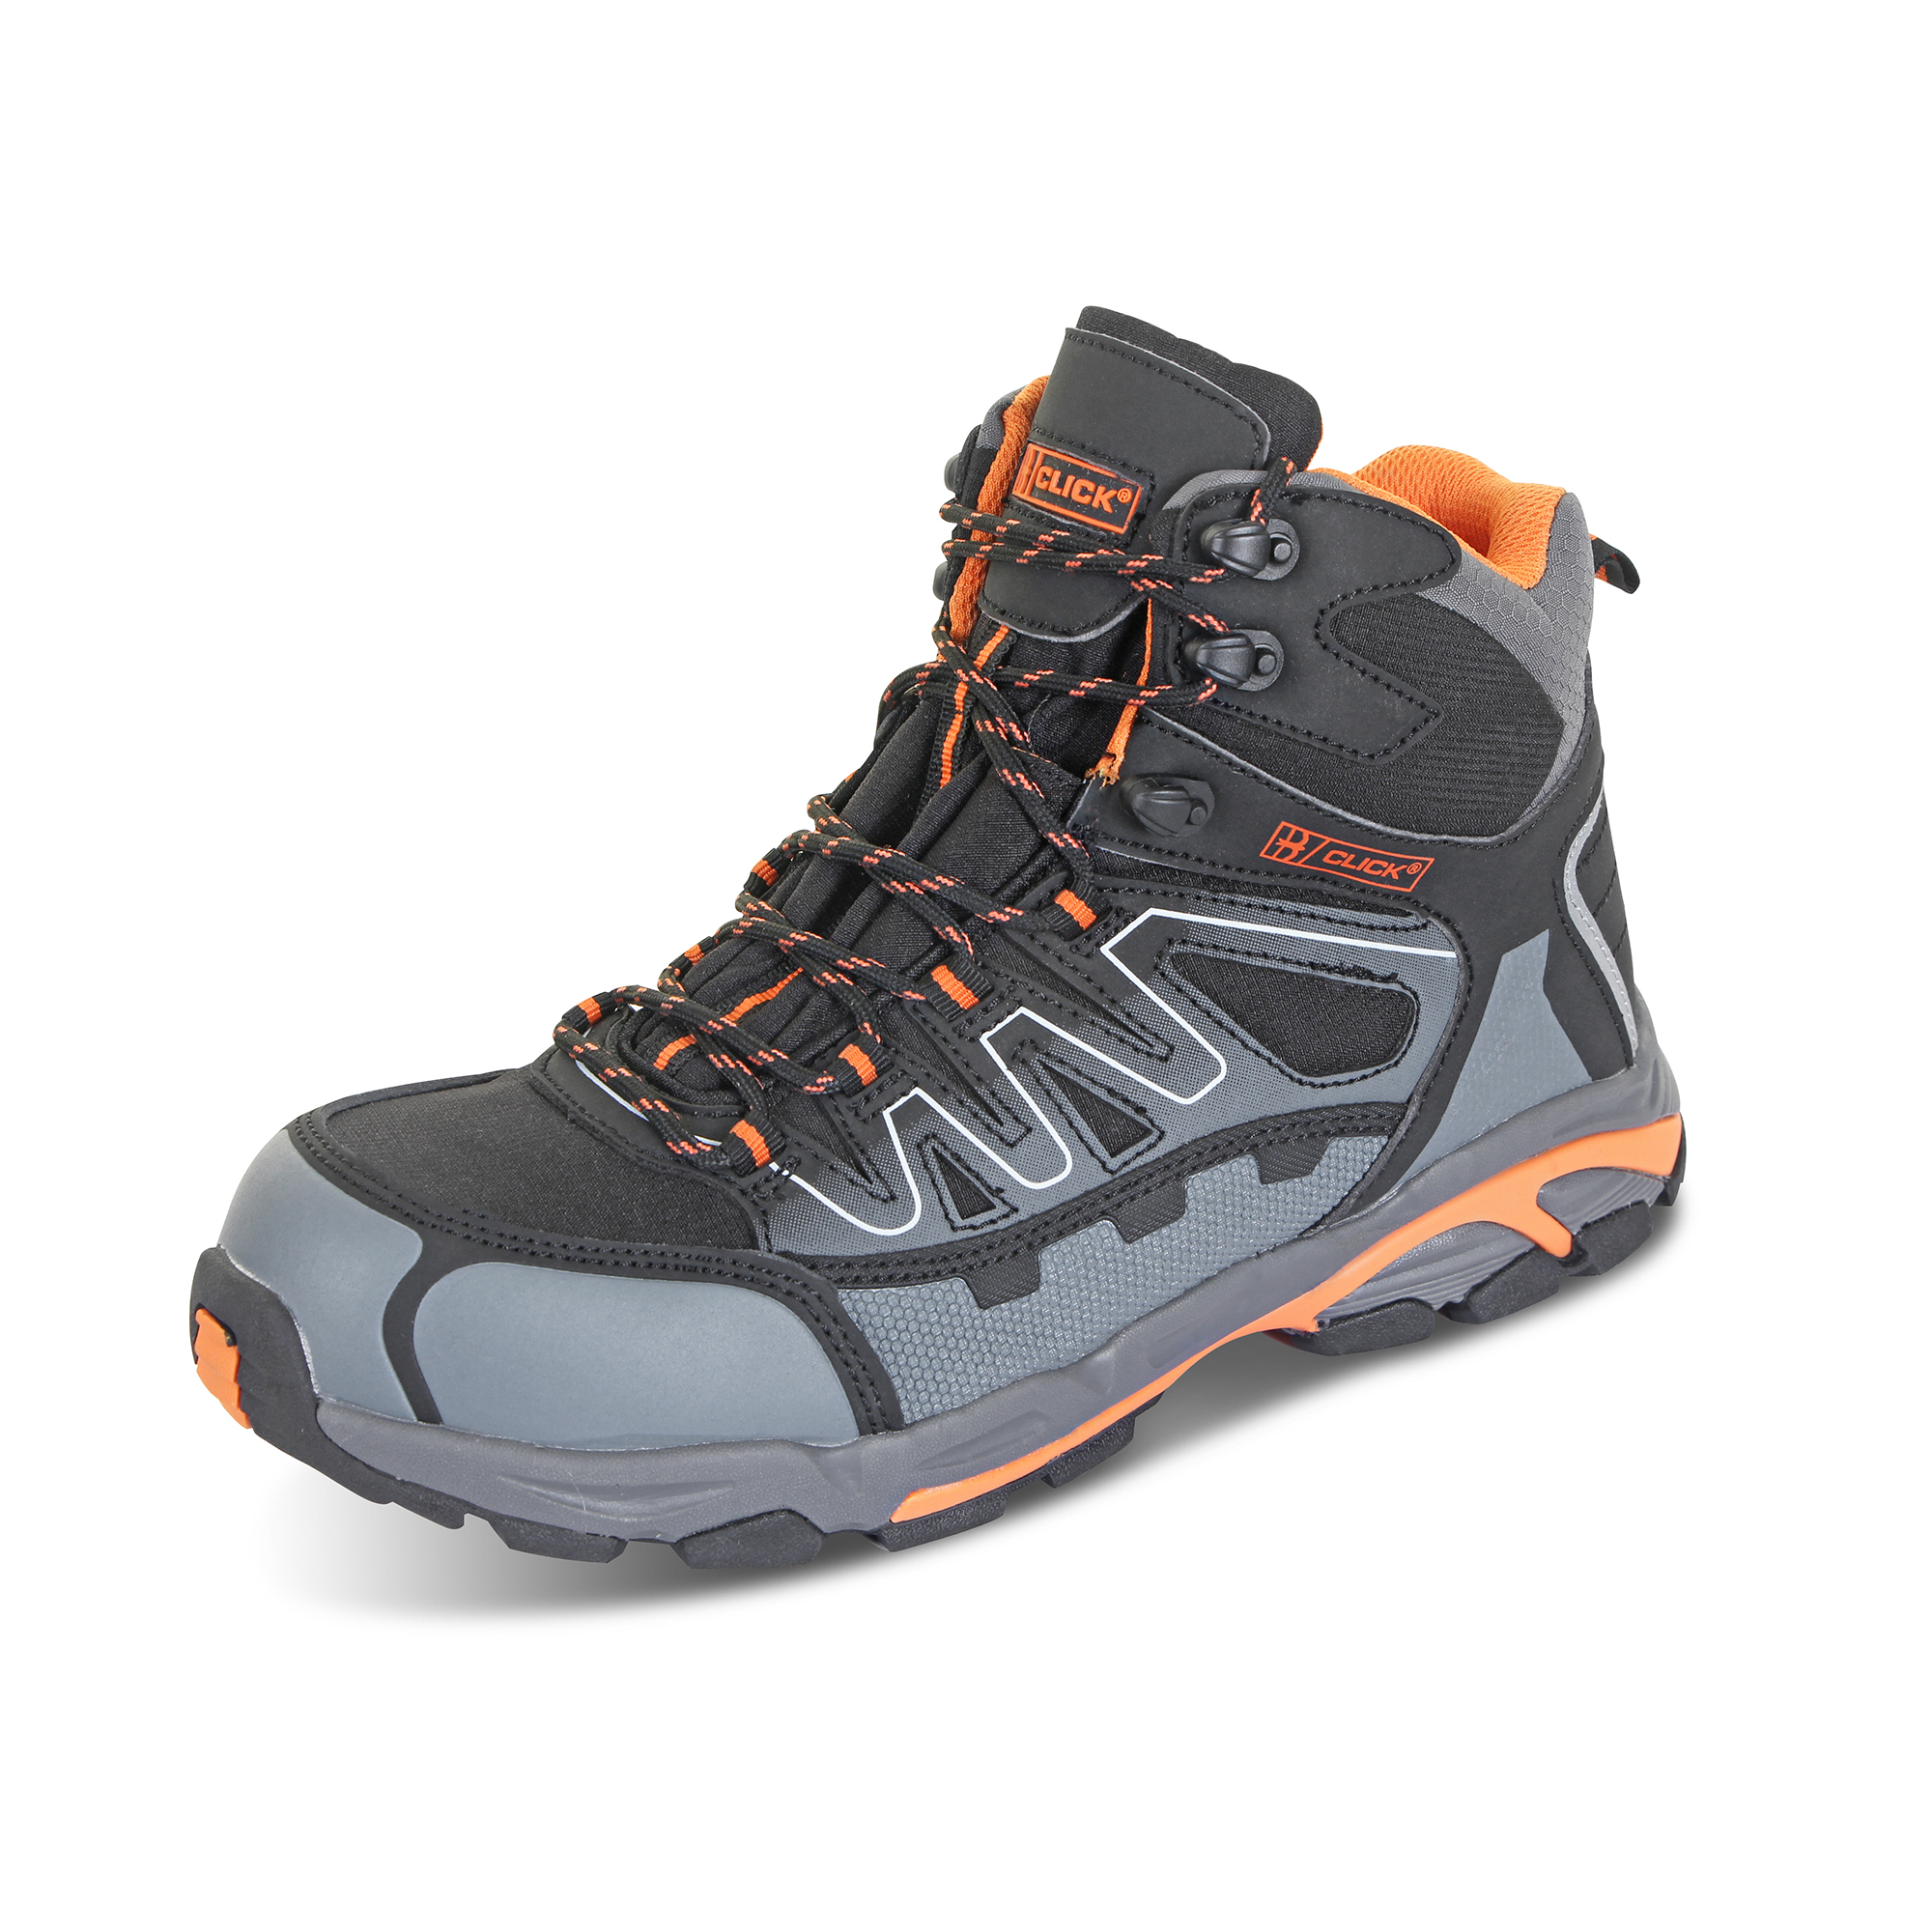 Limitless Click Footwear Leather S3 Hiker Boot Composite Toe Size 4 Black/Grey Ref CF3504 *Up to 3 Day Leadtime*